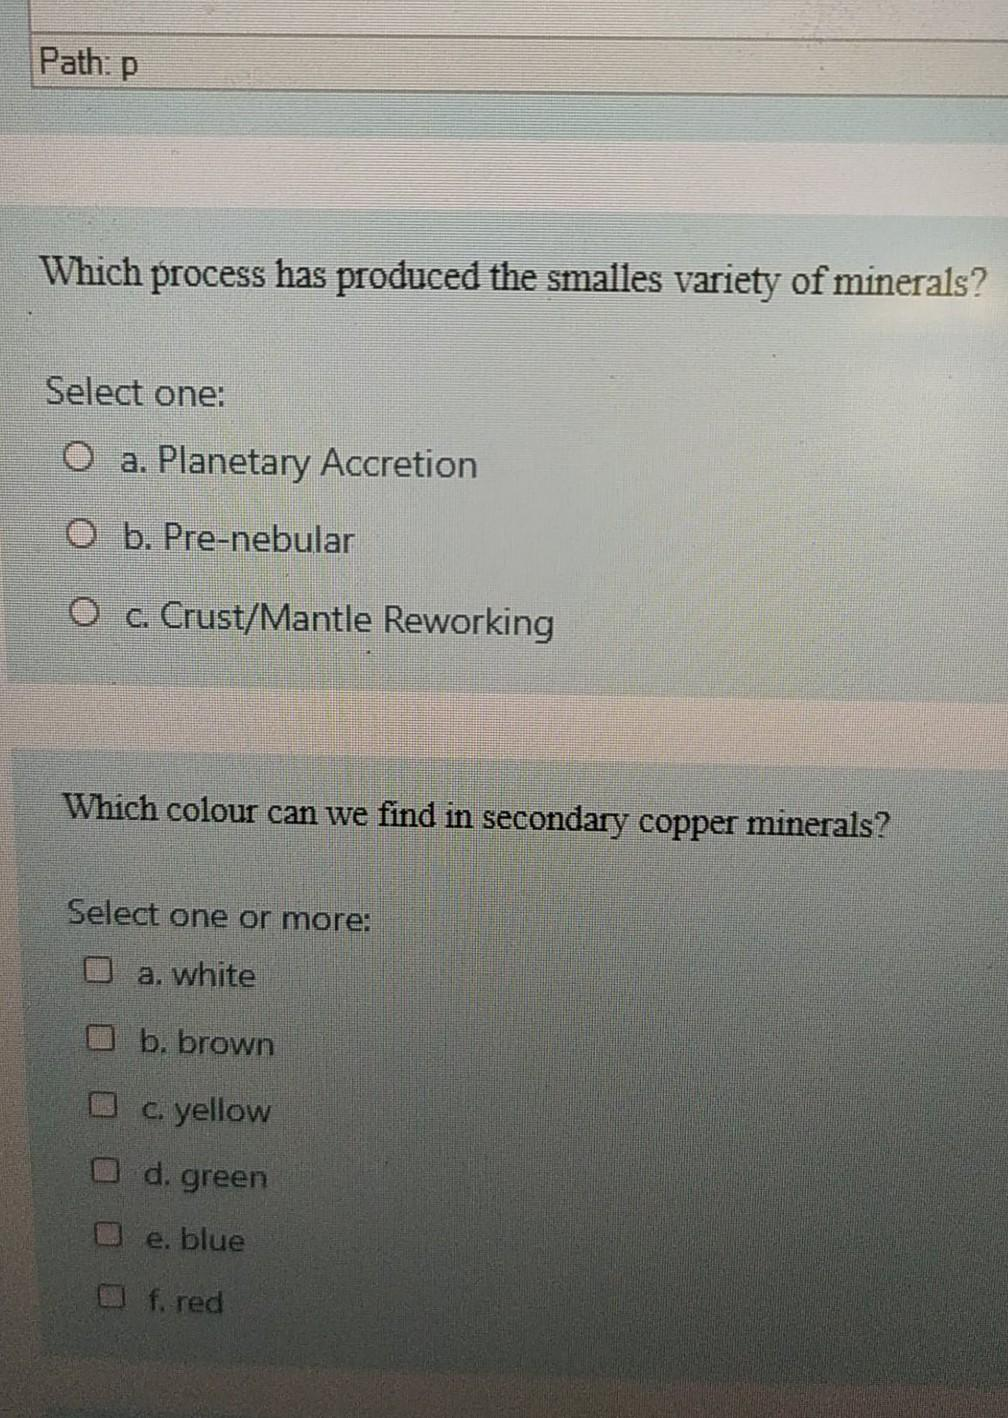 Path: P Which process has produced the smalles variety of minerals? Select one: O a. Planetary Accretion O b. Pre-nebular O c